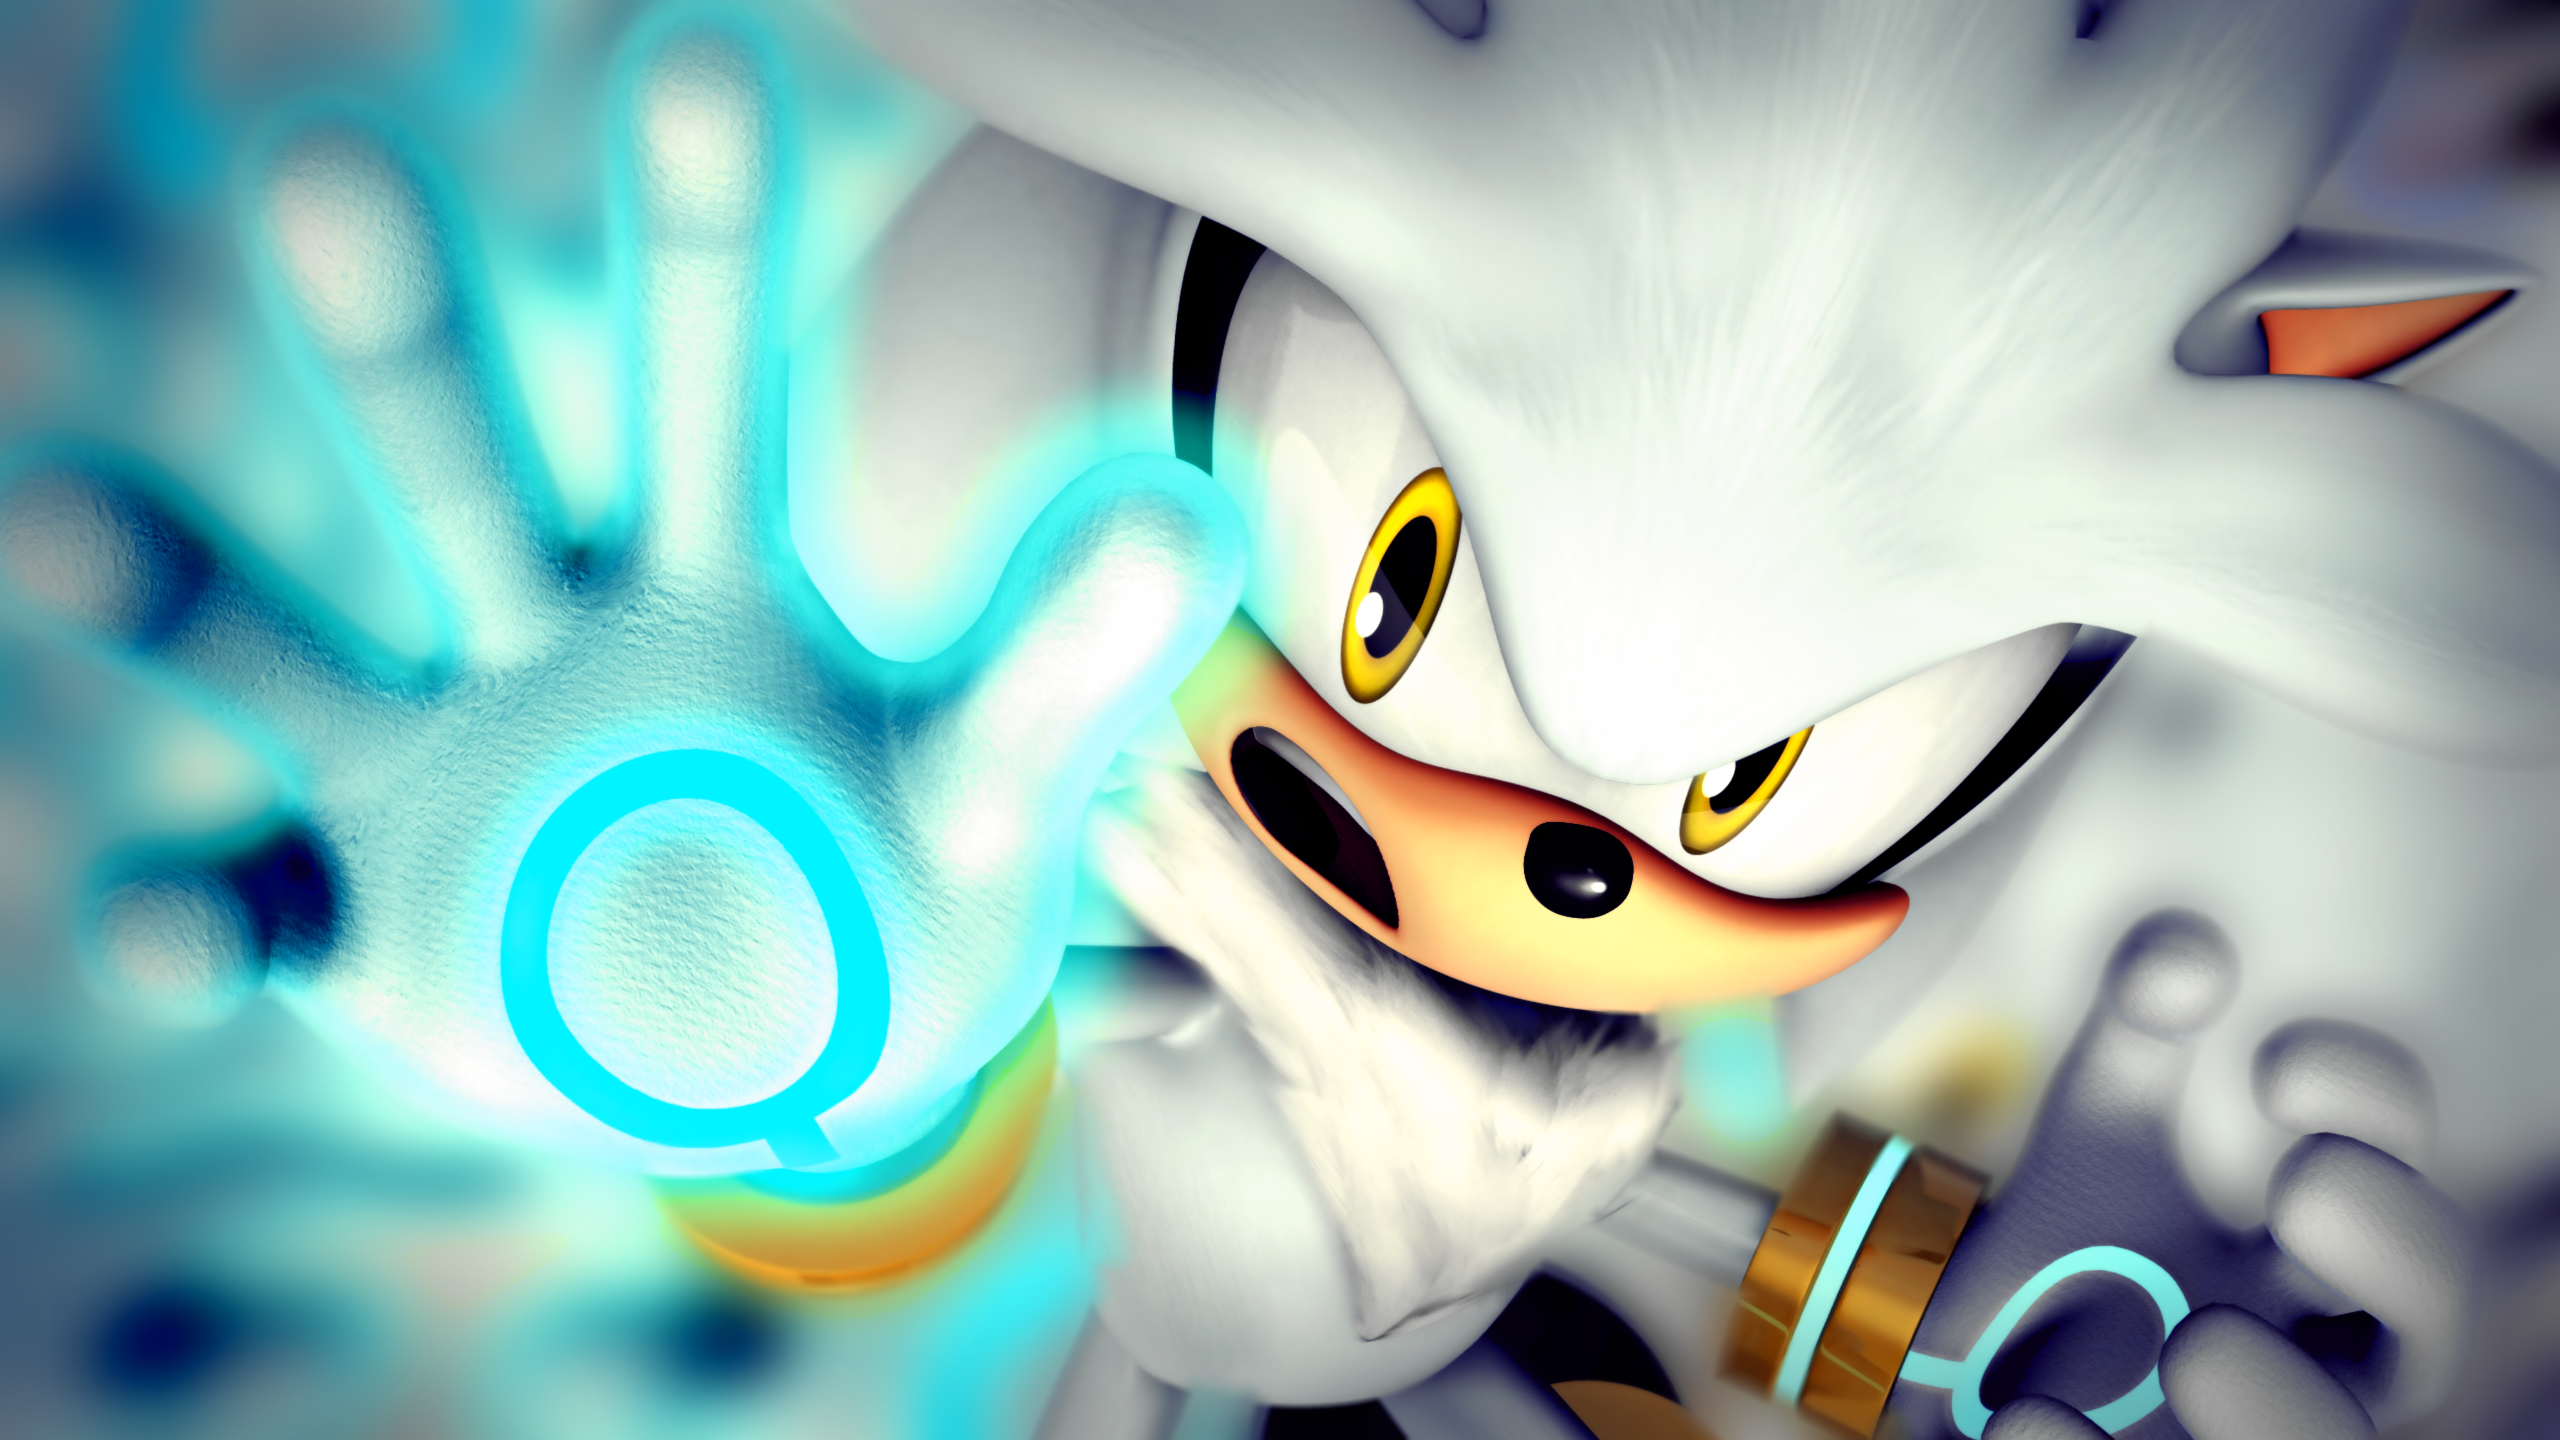 Silver The Hedgehog Pictures 8